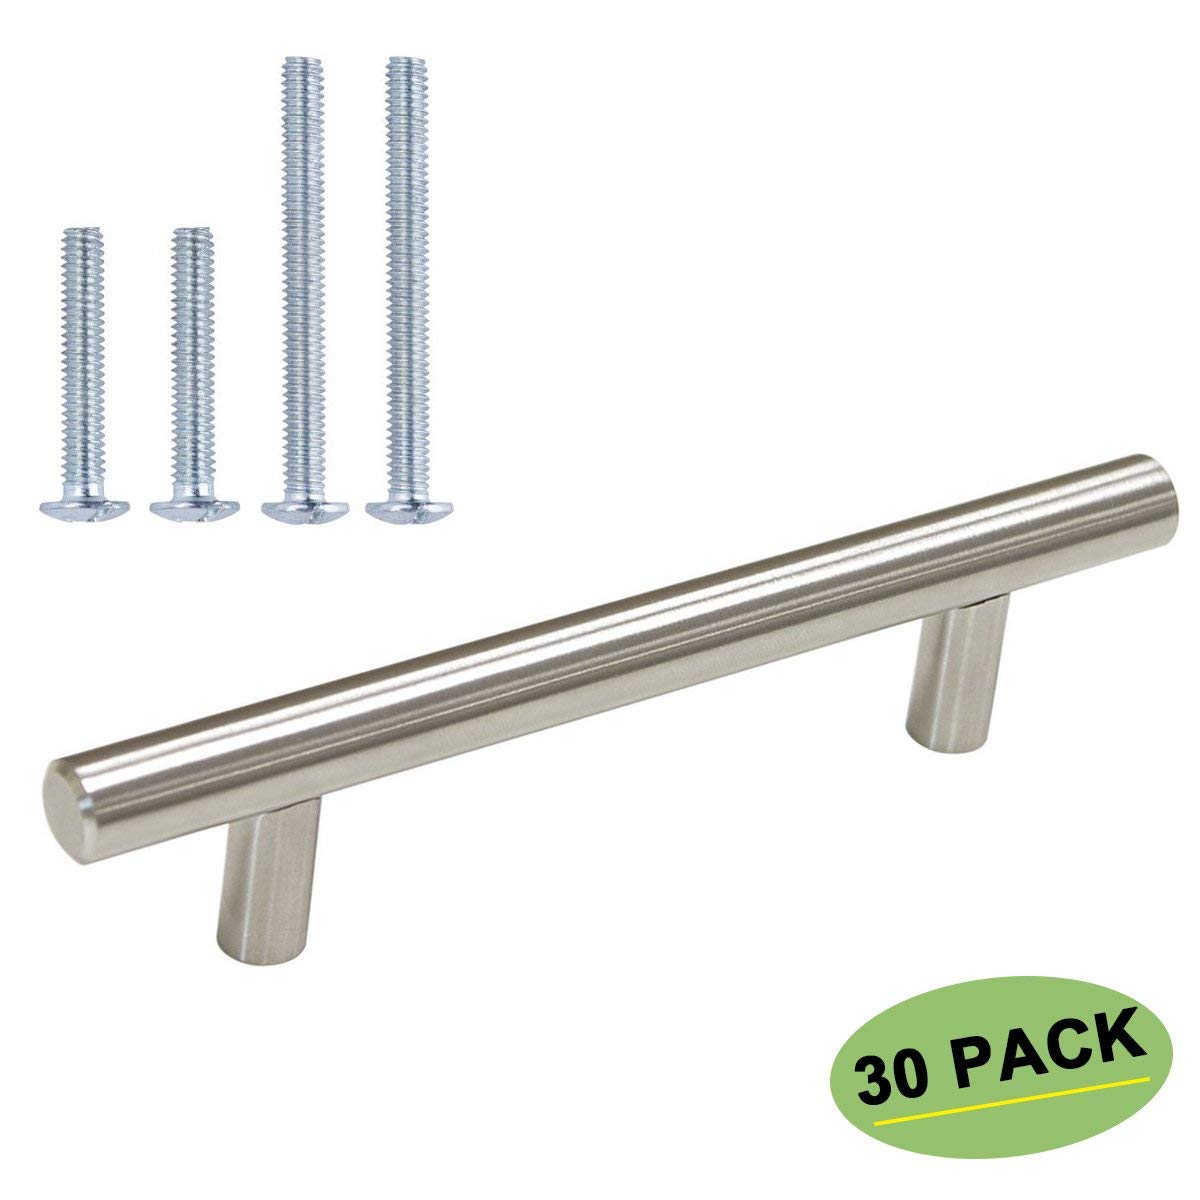 96mm Cabinet Pulls Brushed Nickel 30 Pack - homdiy HD201BSS 3.75 inch Drawer Pulls Dresser Drawer Handles Kitchen Cabinet Hardware Bathroom Cabinet Handles Stainless Steel Cabinet Drawer Pulls